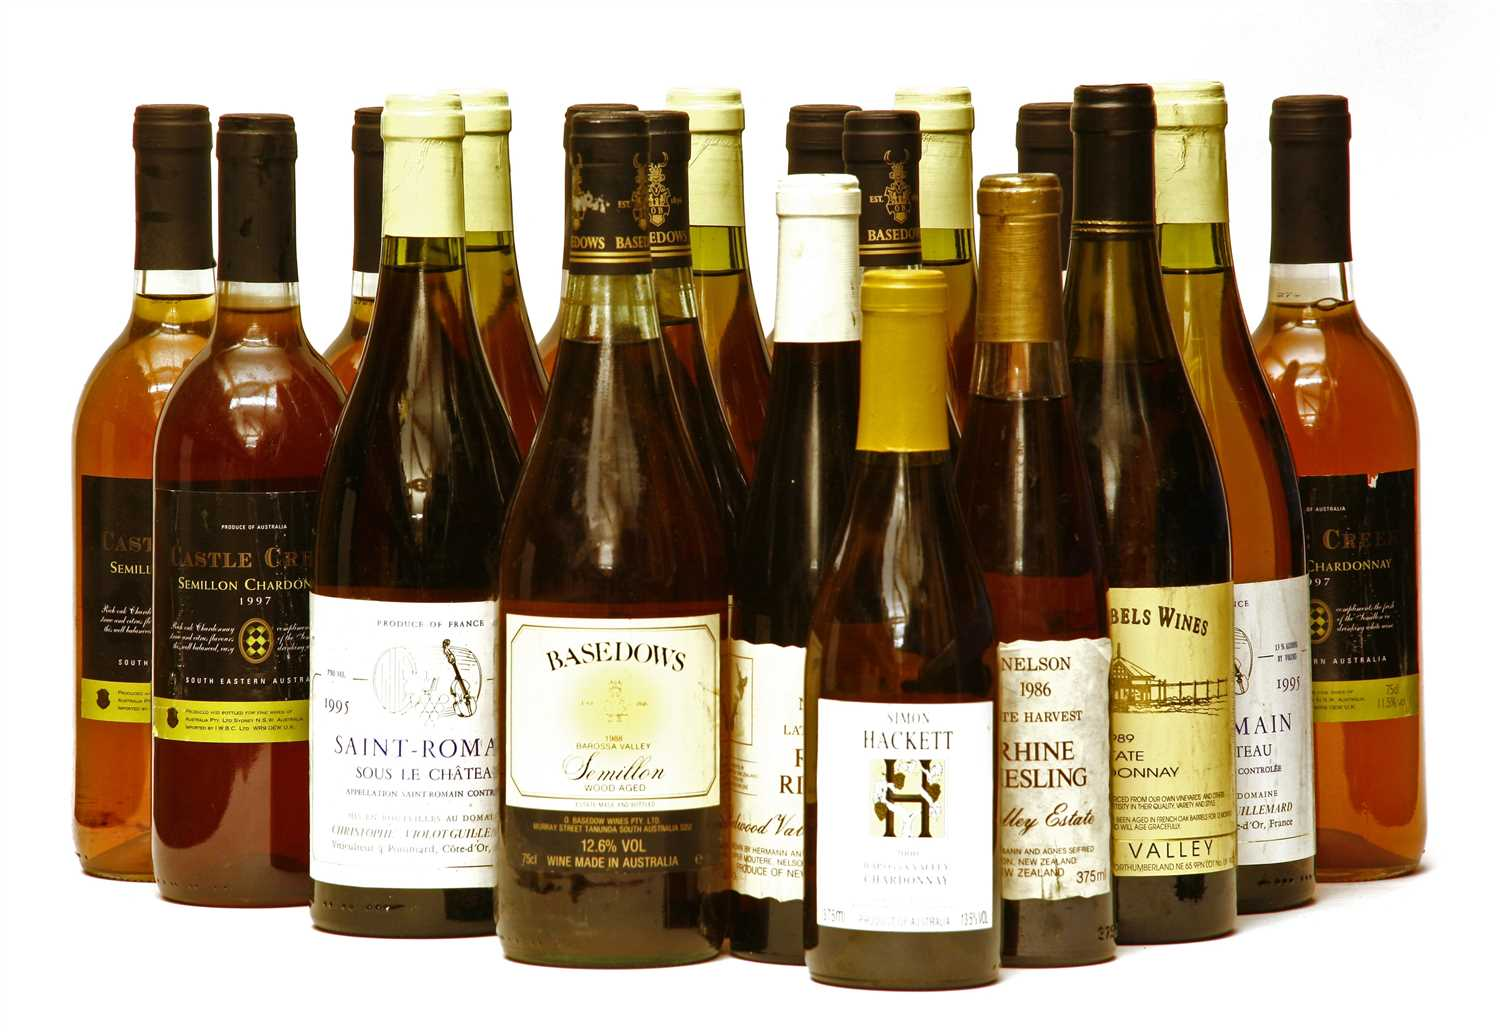 Assorted White Wine to include: Basedows, Semillon, 1988